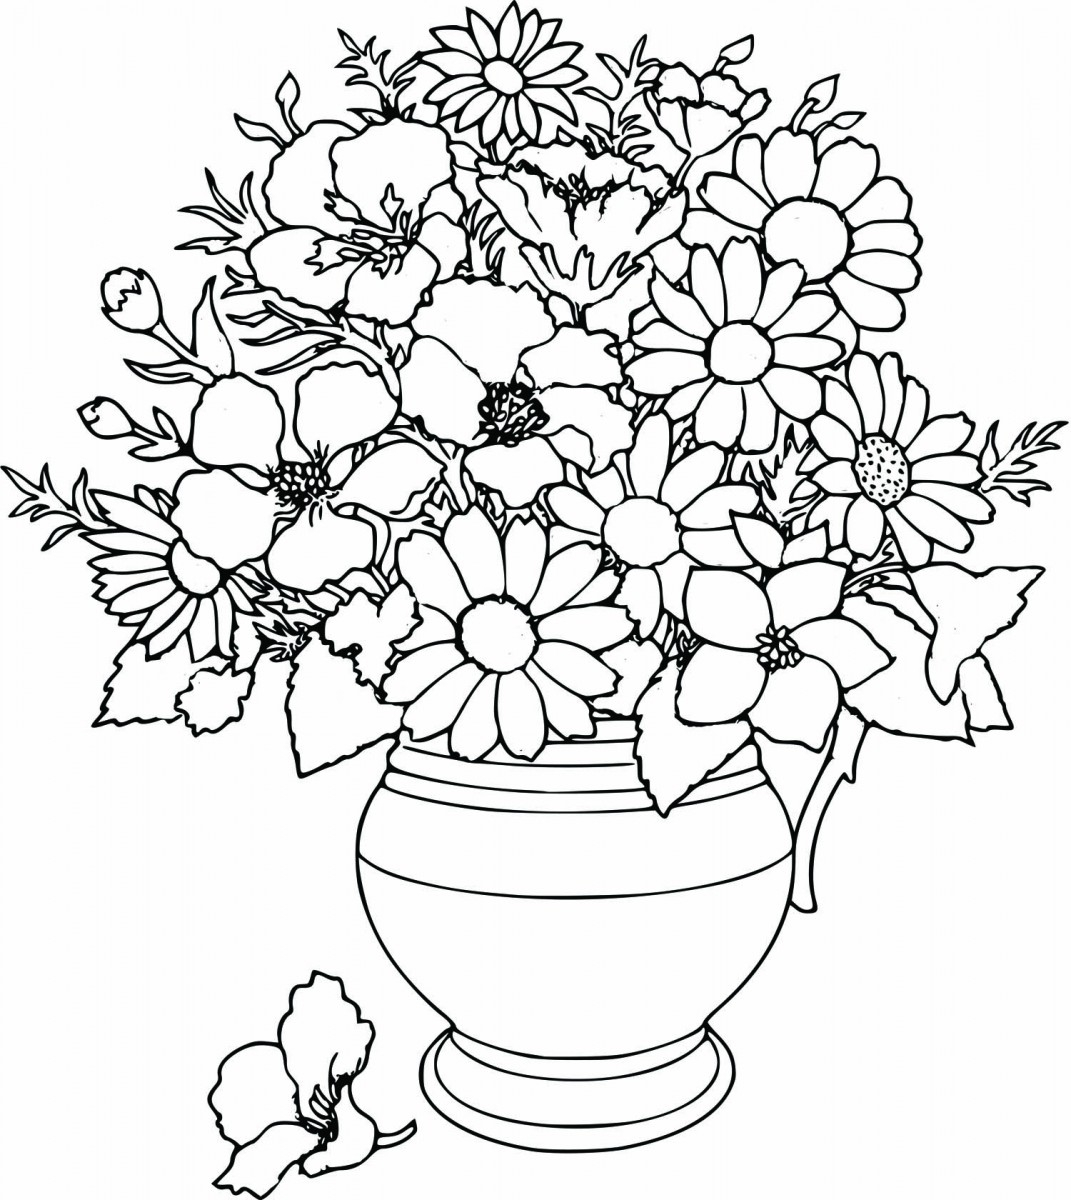 Flowers Coloring Pages Free Printable Simple Flower Coloring Pages Free Cute Printable Coloring Pages